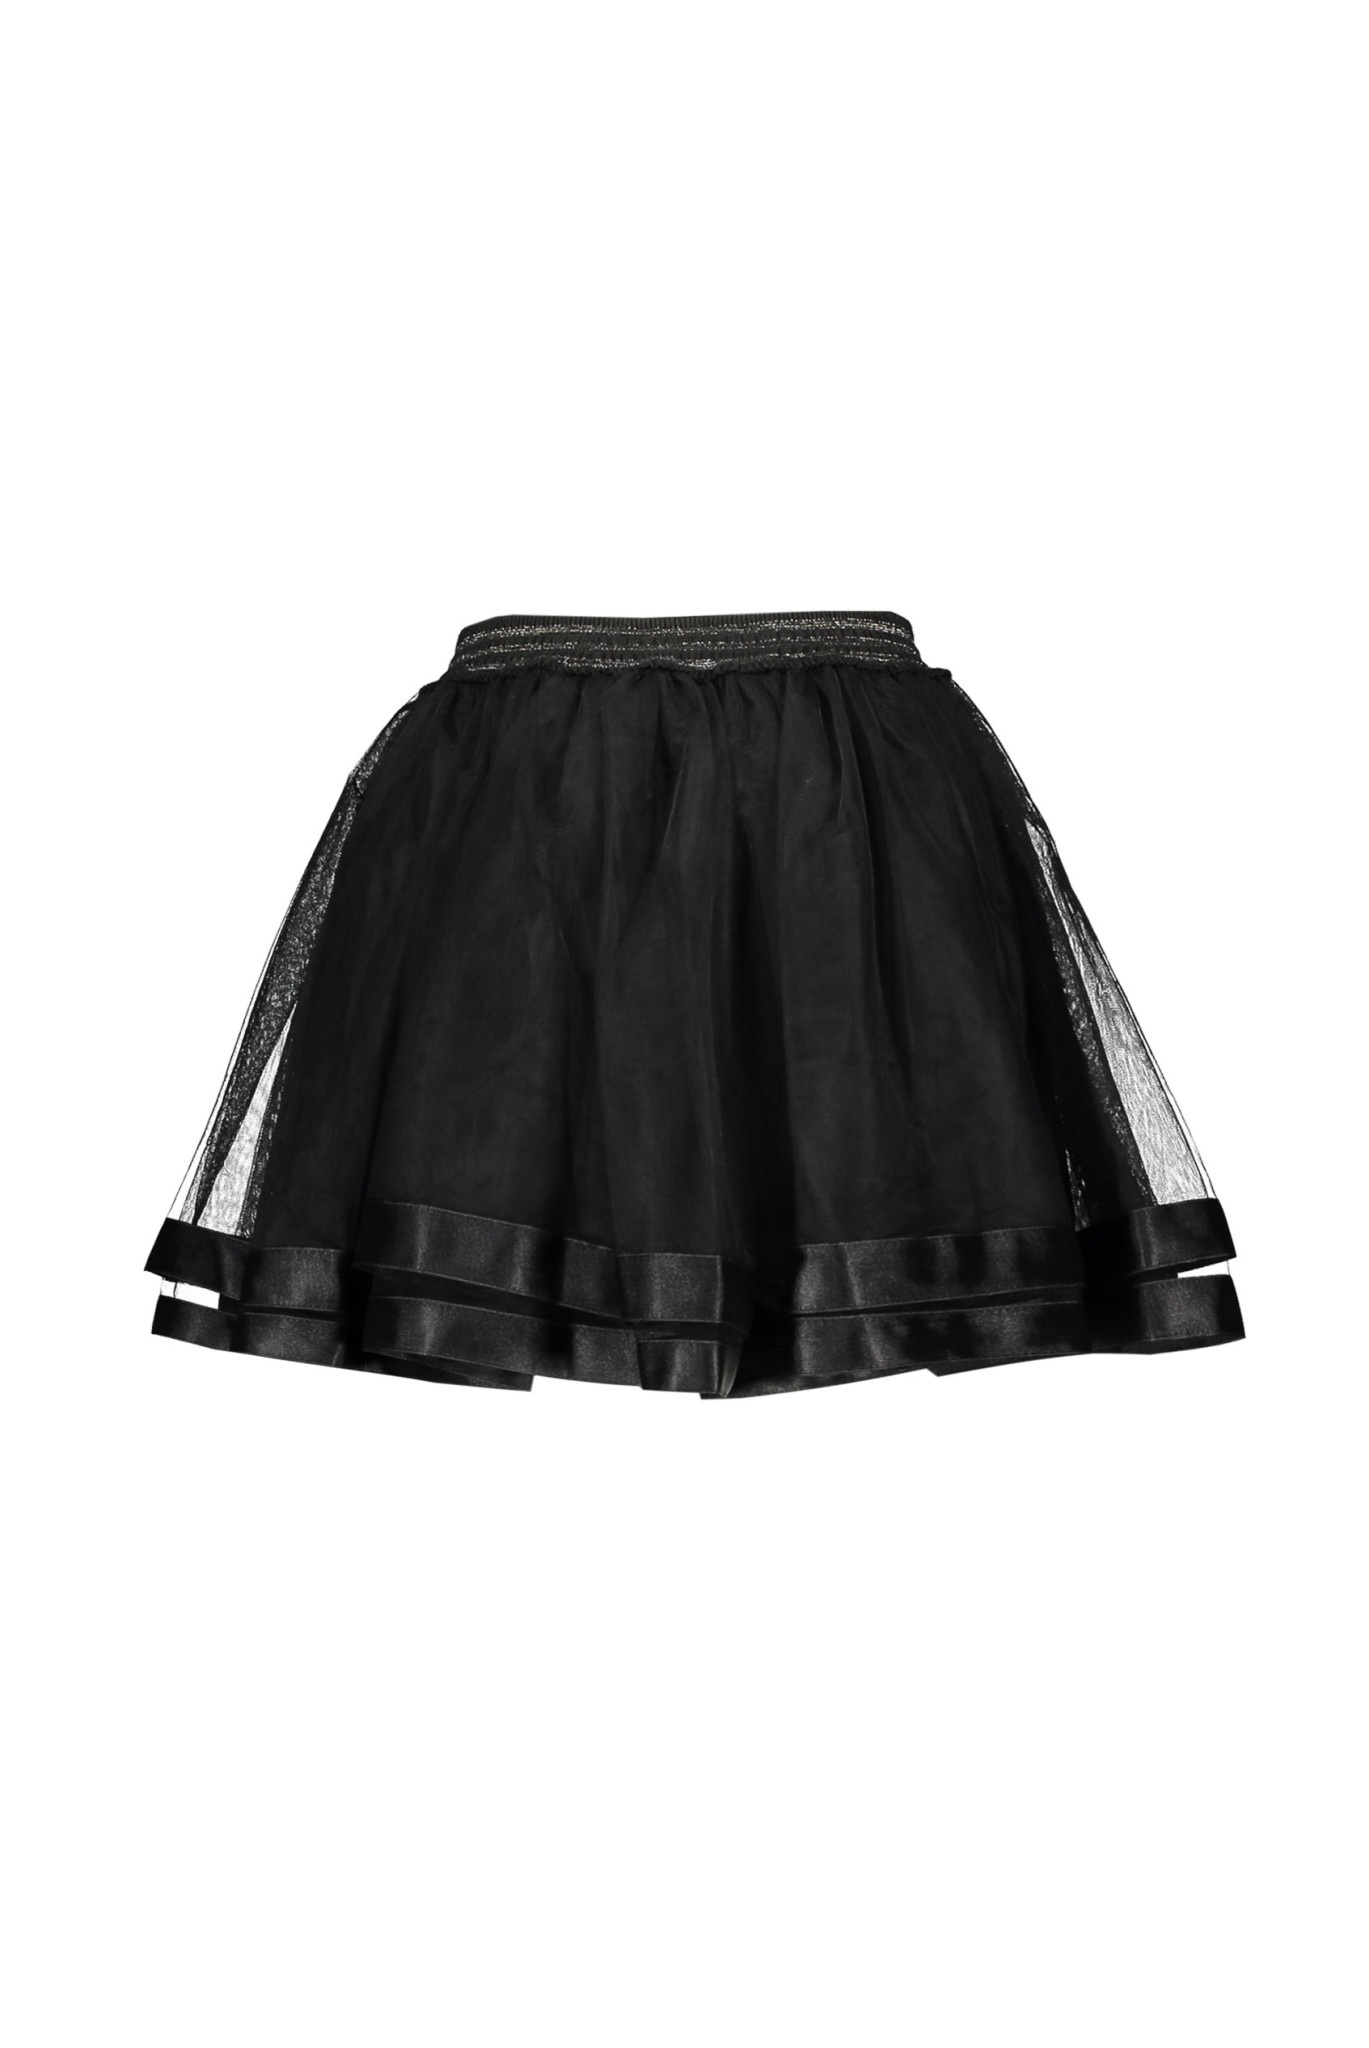 Lily Petticoat Skirt with Satin Trim